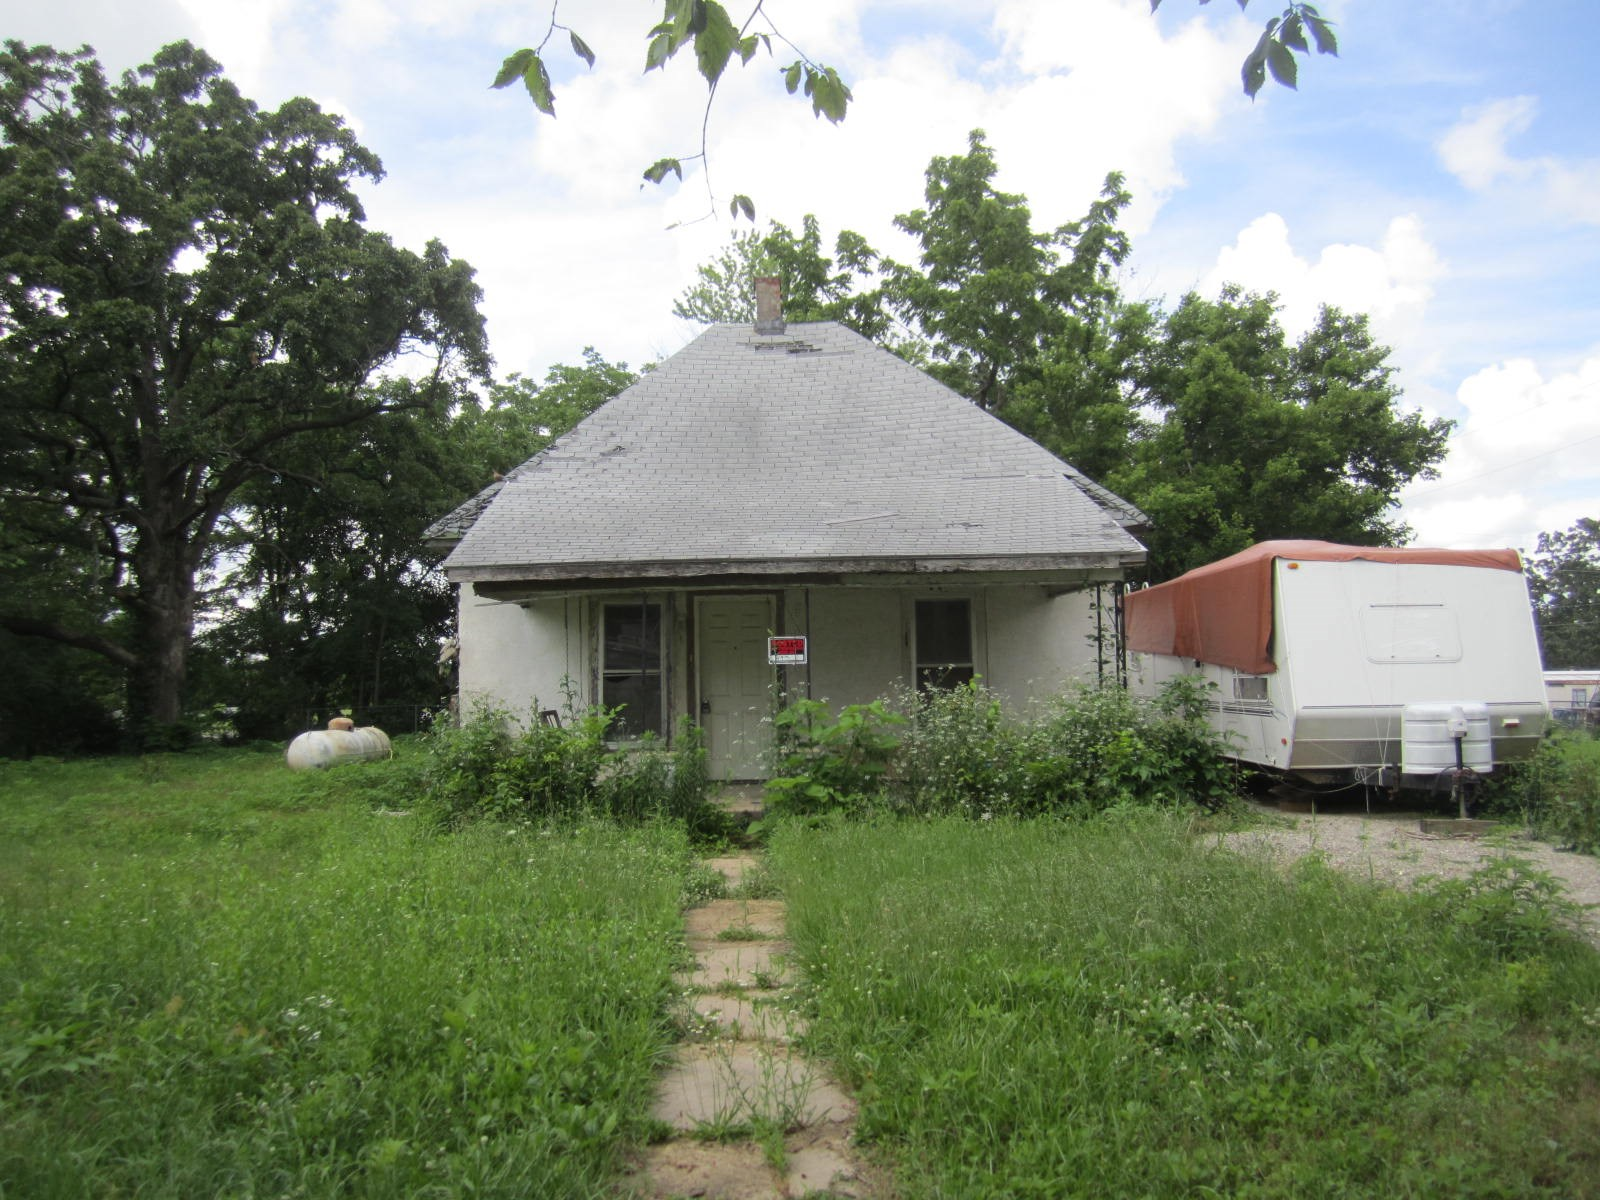 House for sale in Conway, Mo, Fixer upper, Investment